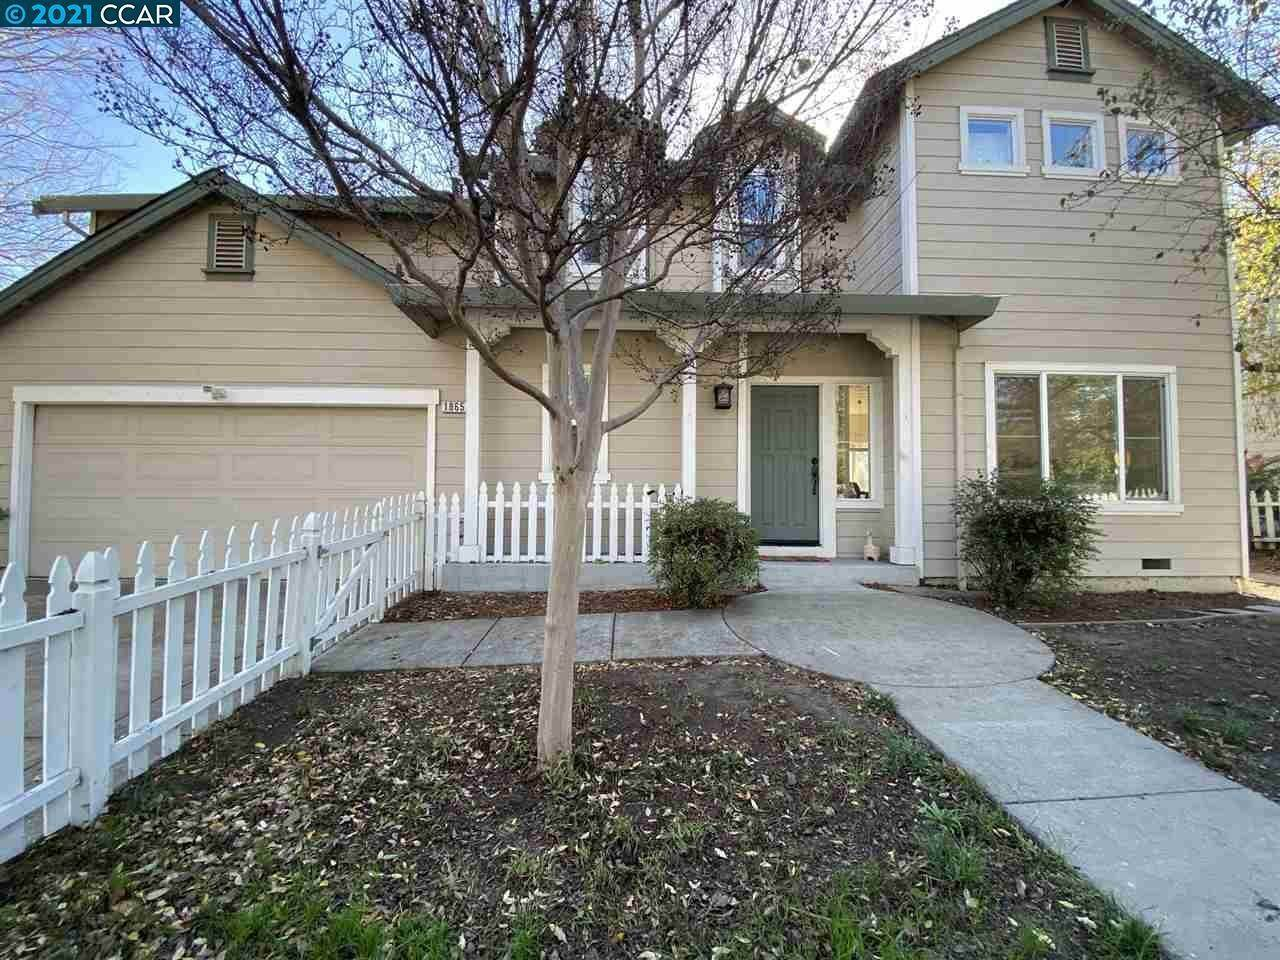 Single Family Homes at 1865 Parkside Drive Walnut Creek, カリフォルニア 94597 アメリカ